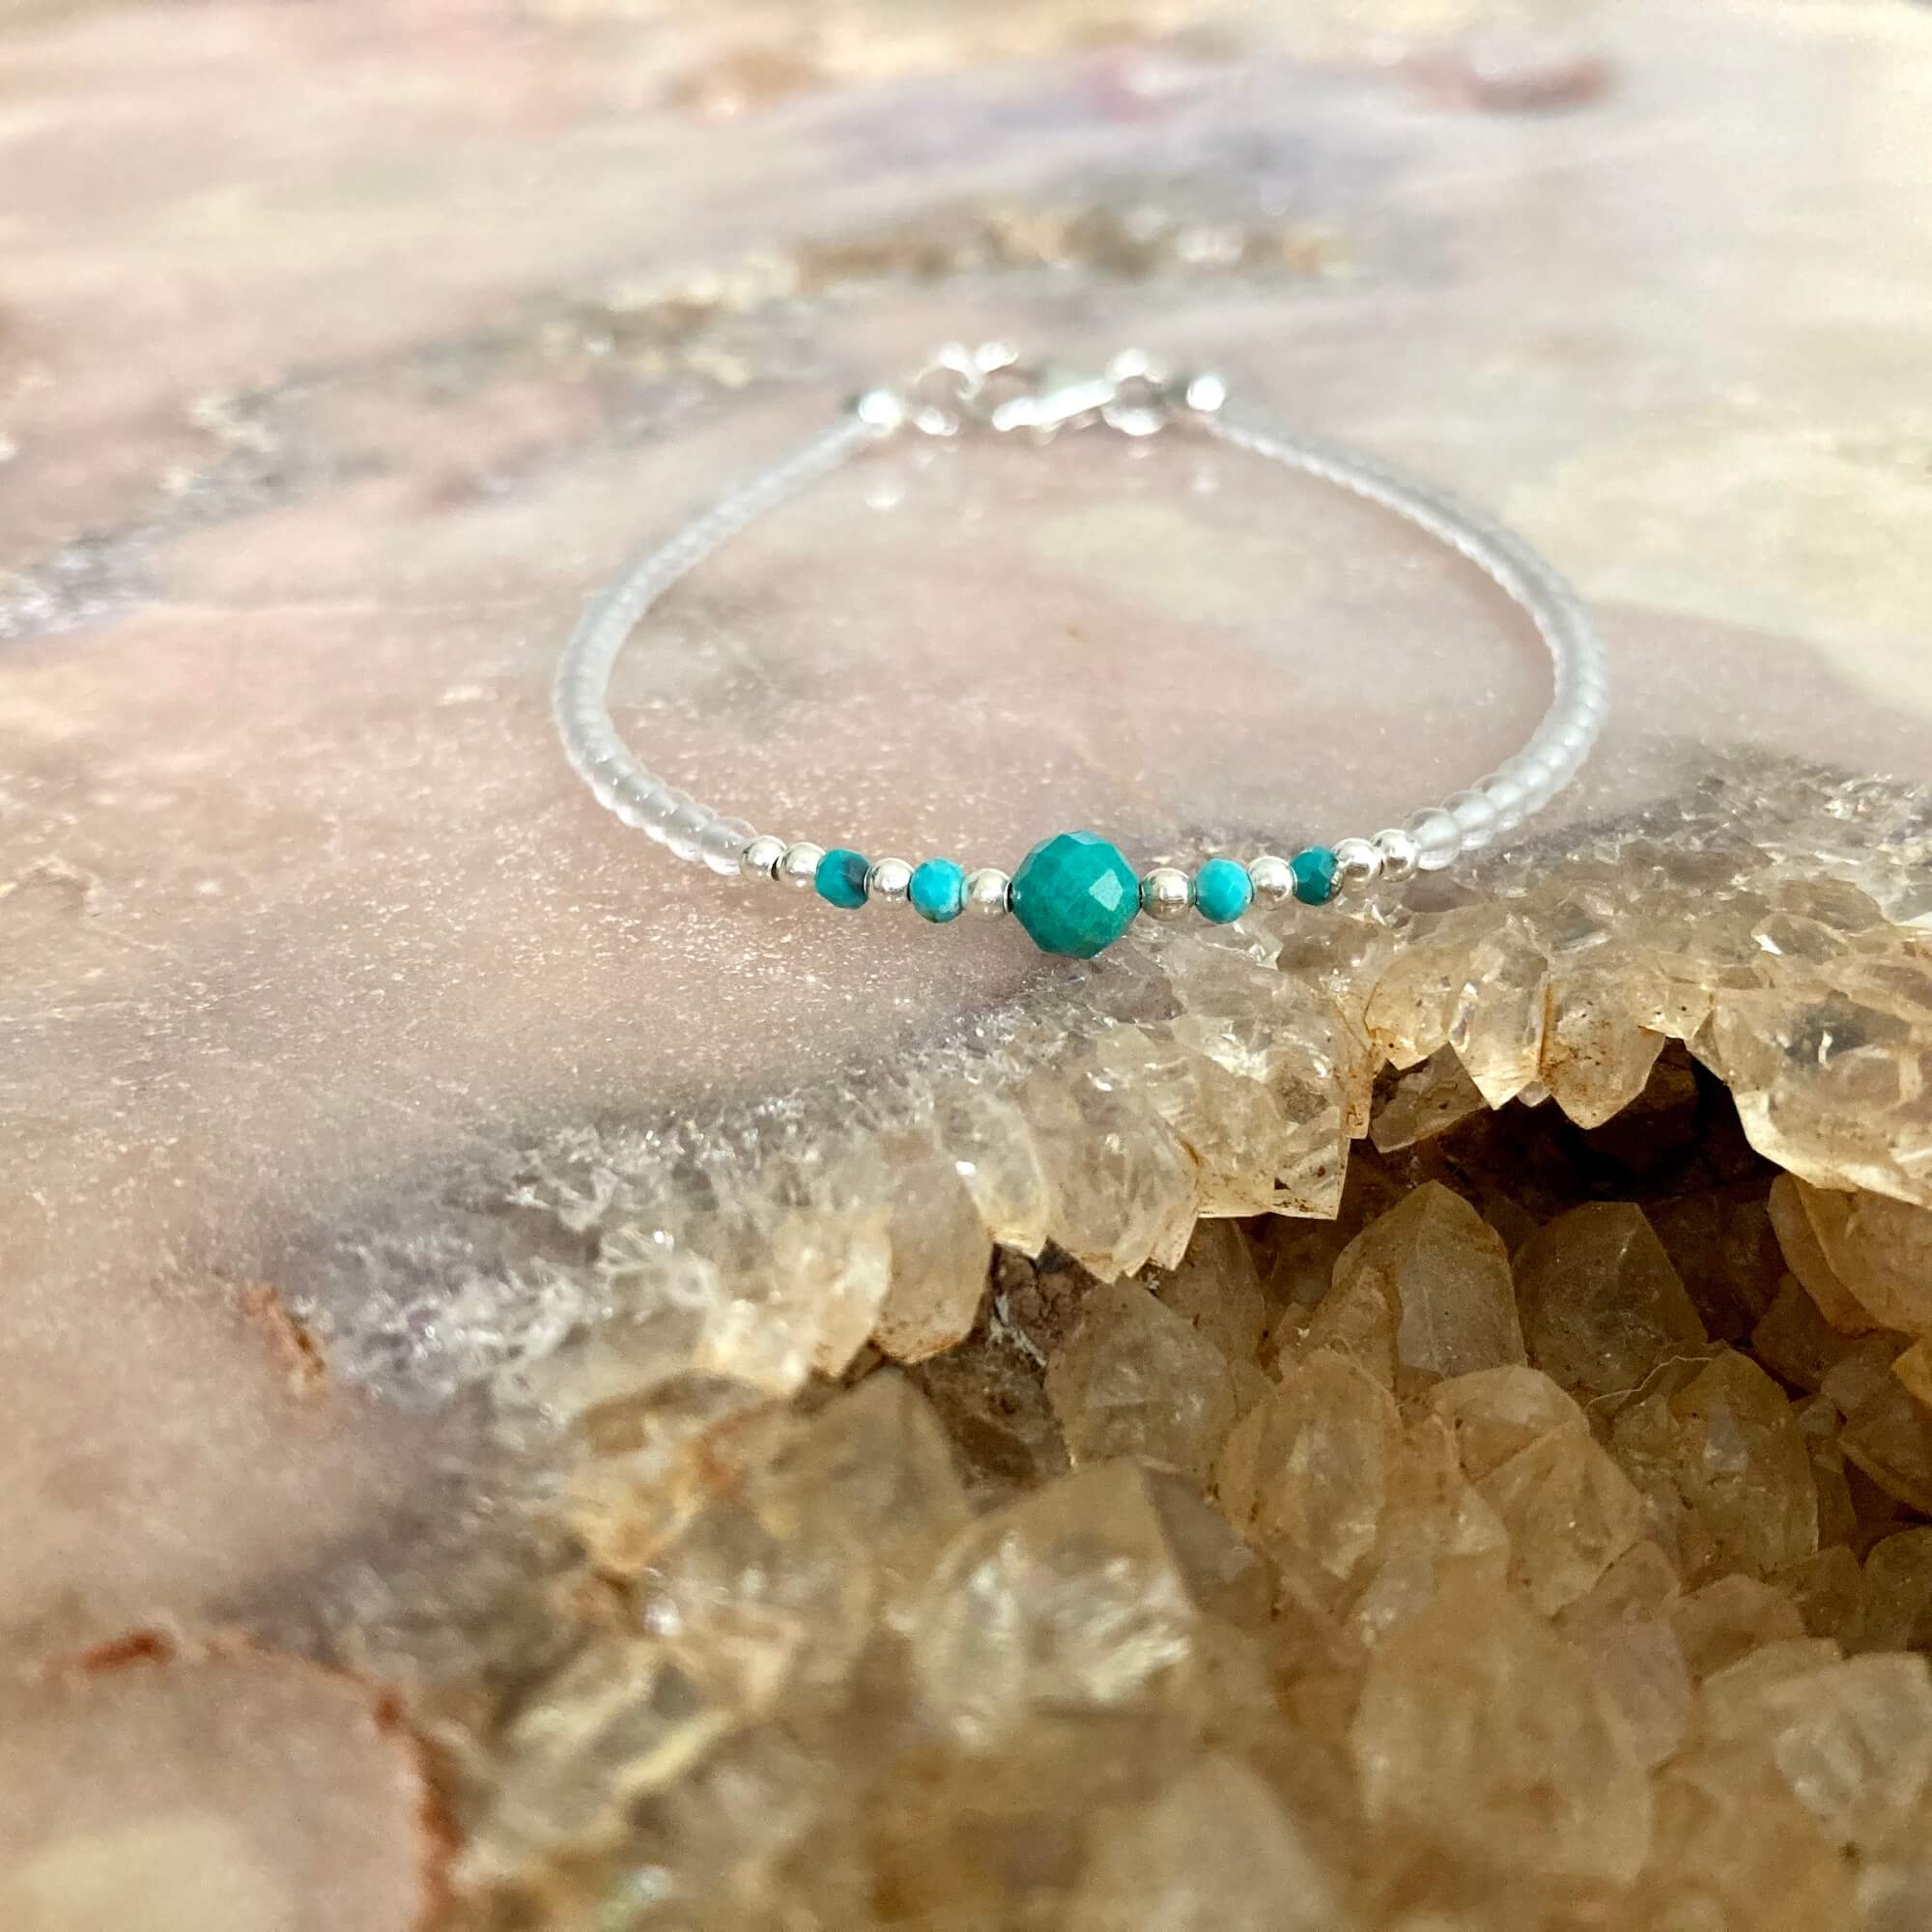 Turquoise bracelet for healing ladies